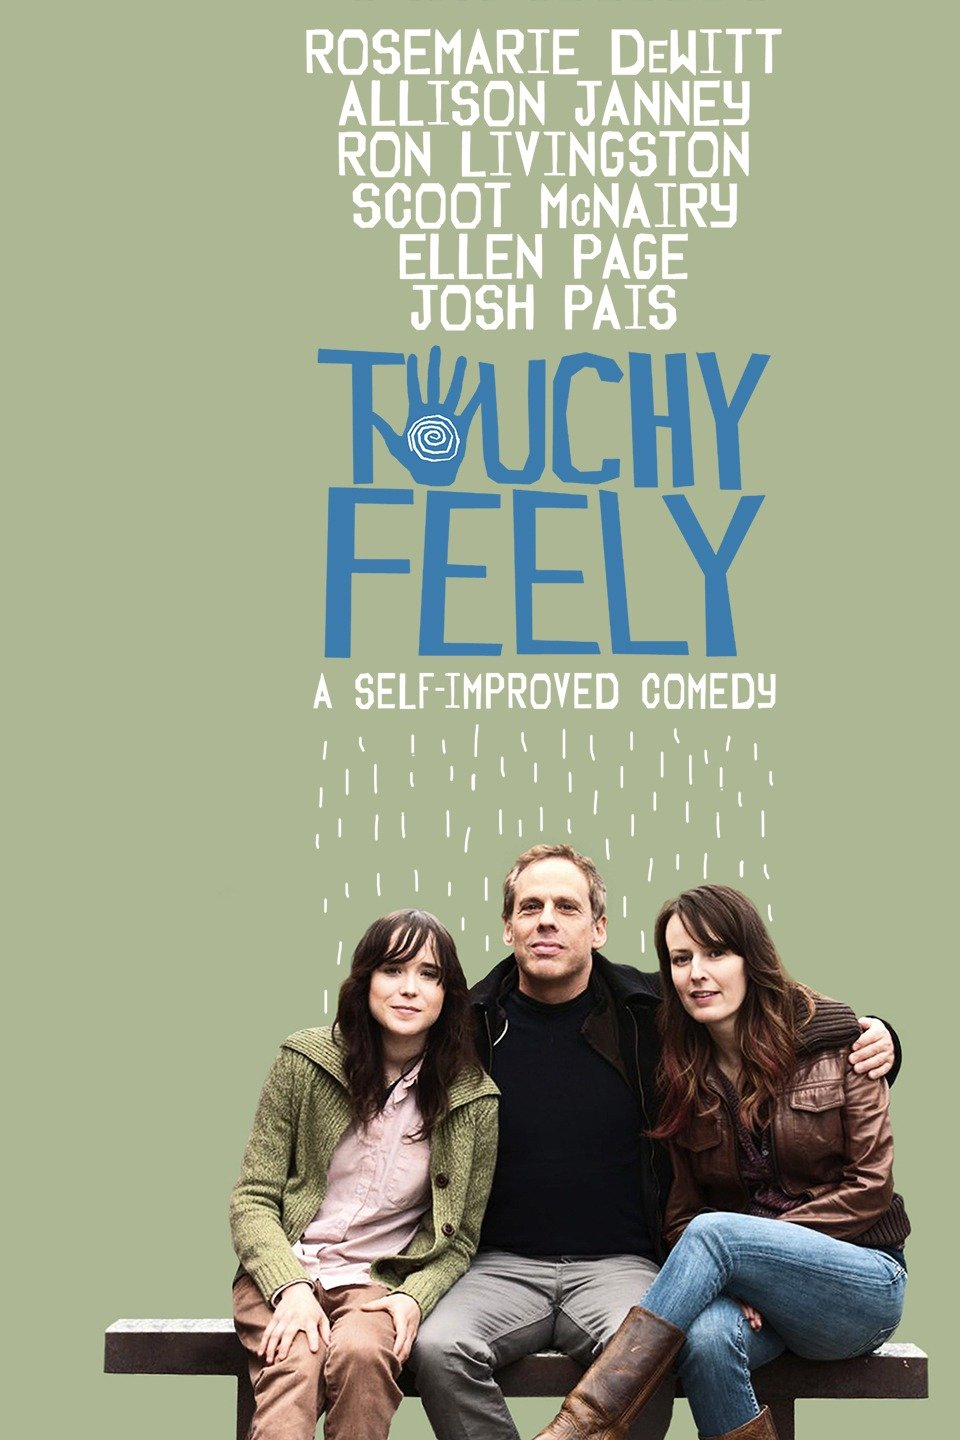 3SMR: Touchy Feely